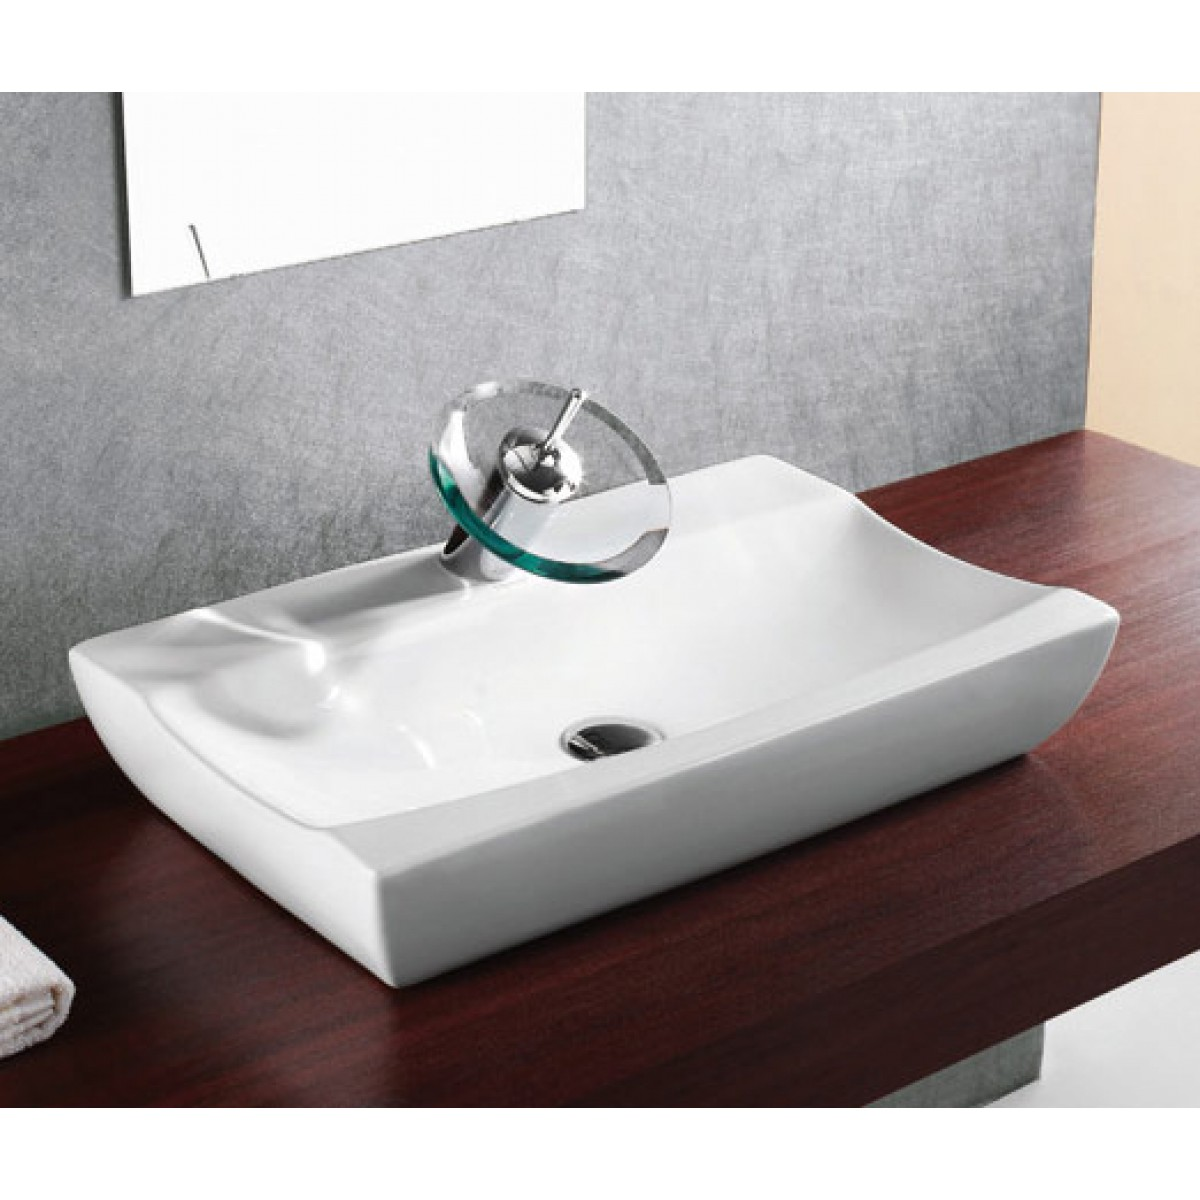 Porcelain Ceramic Single Hole Countertop Bathroom Vessel Sink   25 x 15 1 2  x 5 1 2 Inch. Porcelain Ceramic Single Hole Countertop Bathroom Vessel Sink   25